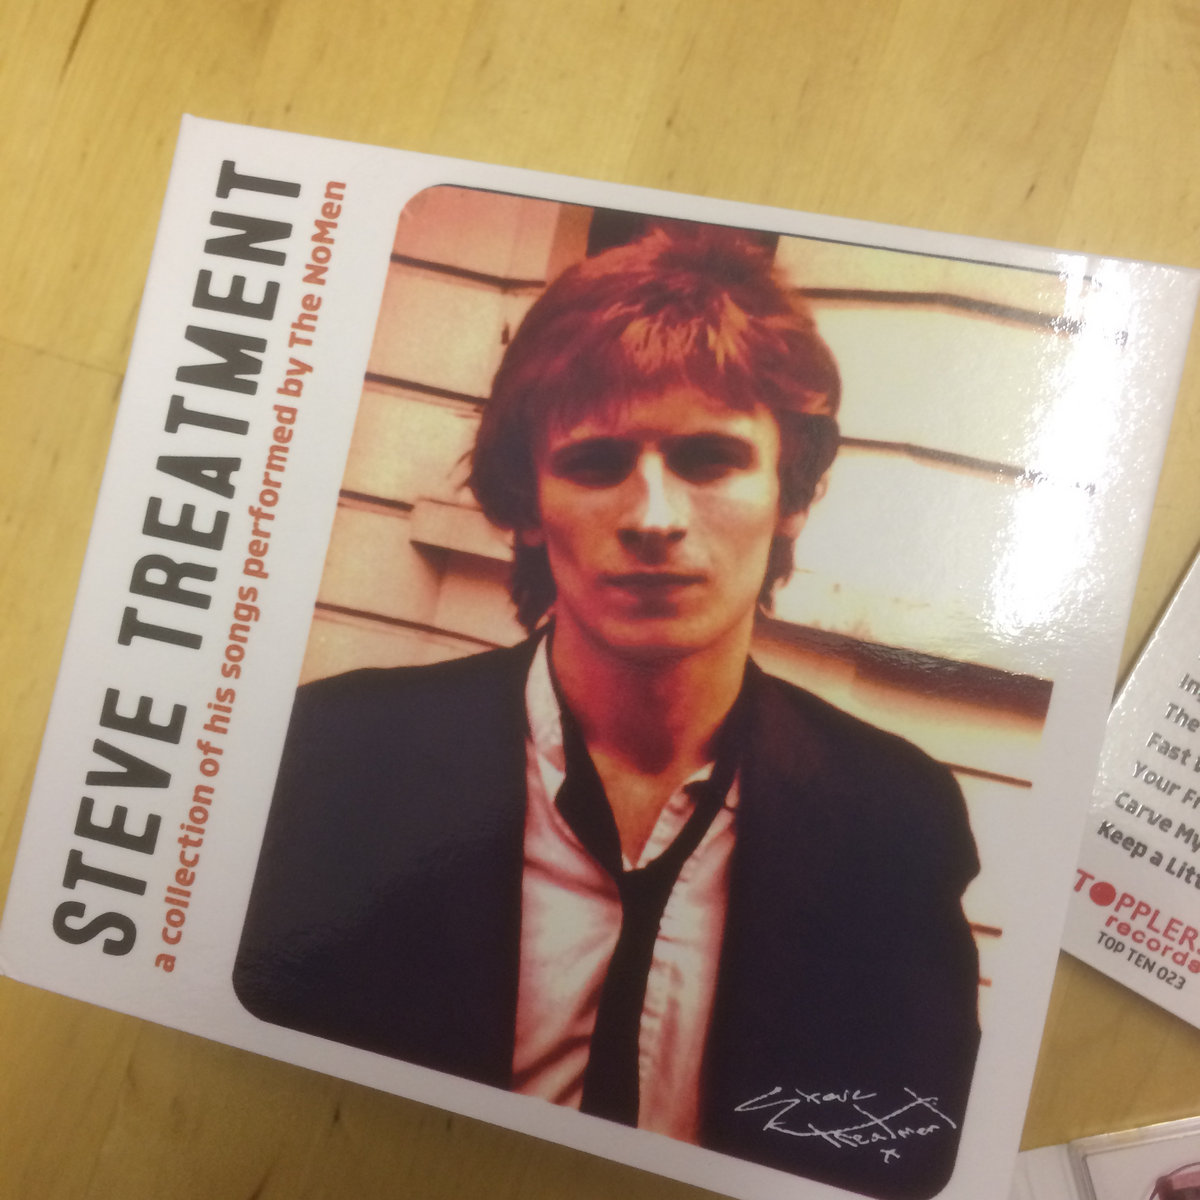 Top yourself baby the nomen the songs of steve treatment are reworked by the nomen in this compilation of recordings from 2003 to 2015 the cd comes in a gatefold digipack sleeve with solutioingenieria Gallery